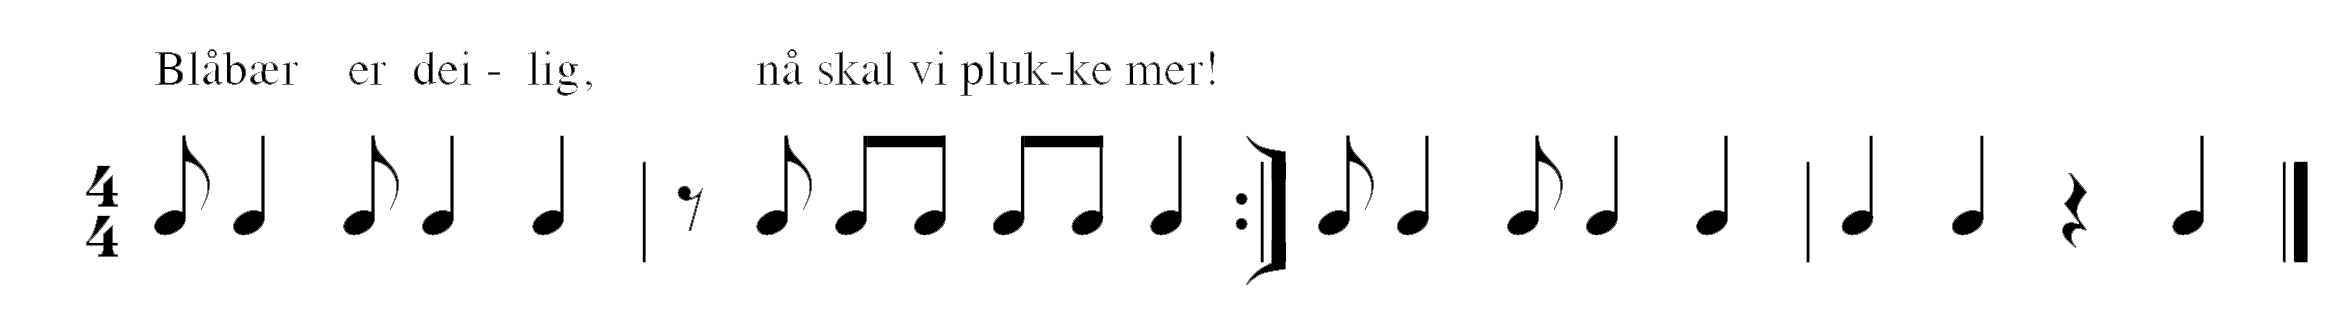 Note nr. 13.png